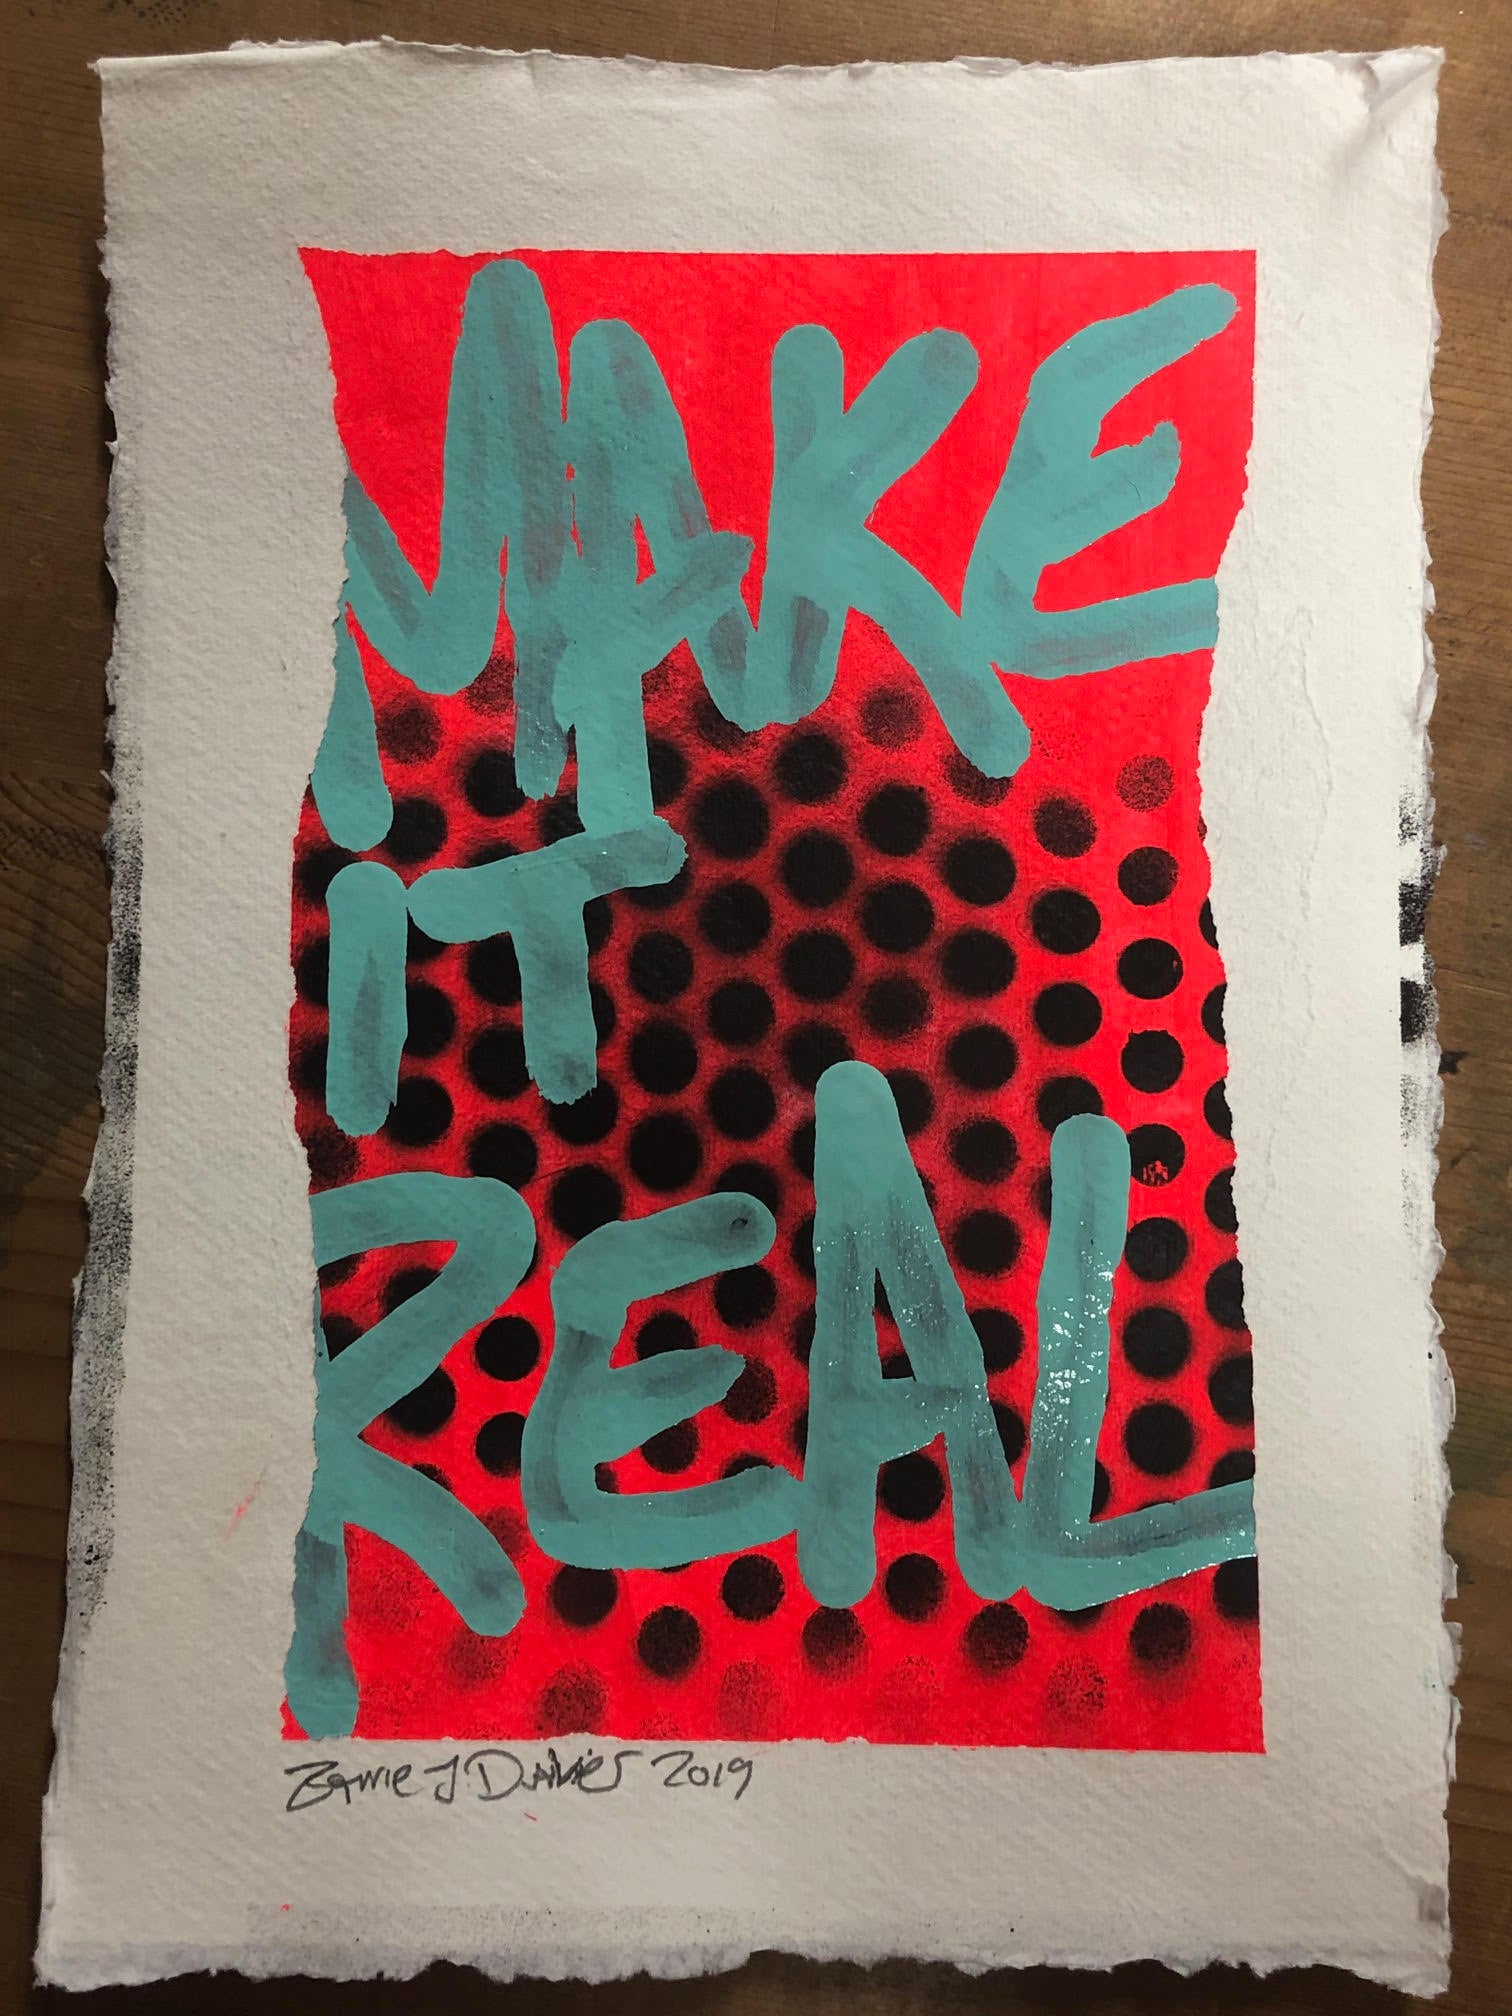 Make it real by Barrie J Davies 2019, paint on A4 Khadi White Cotton Paper unframed, with deckled raw edges. Barrie J Davies is an Artist - Pop Art and Street art inspired Artist based in Brighton England UK - Pop Art Paintings, Street Art Prints & Editions available.